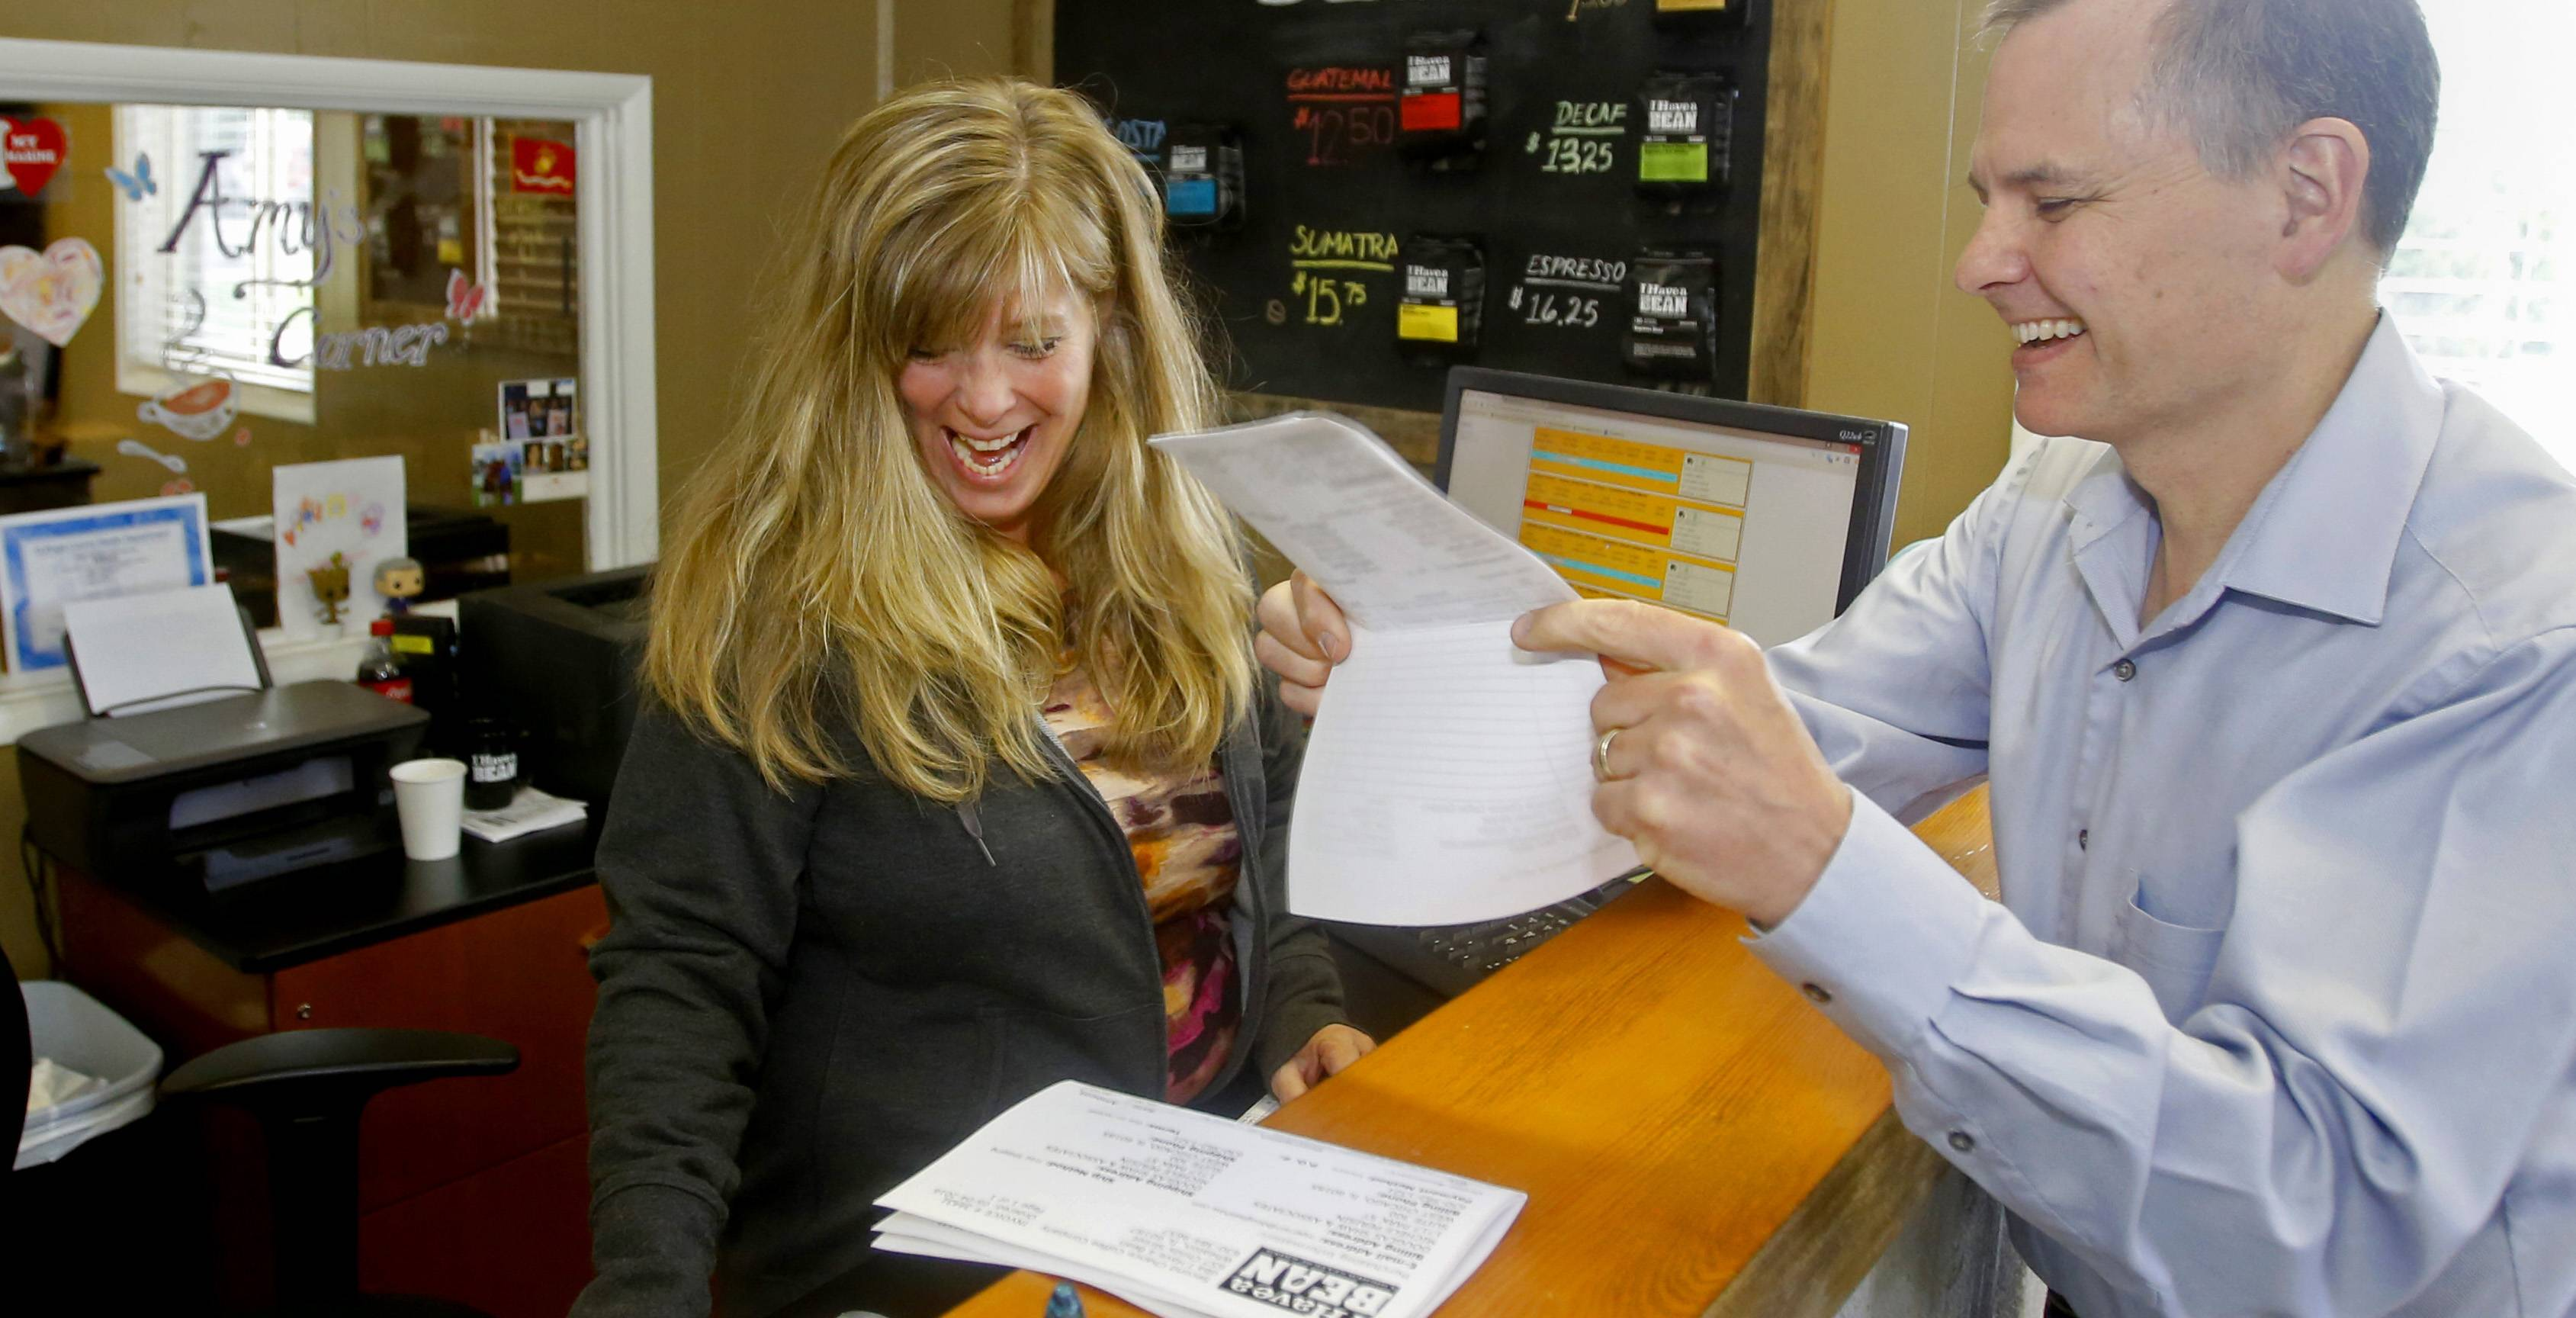 Pete Leonard, right, founder of Second Chance Coffee Company, provides employment opportunities for felons like his office manager Amy, who has been with the company for five years.